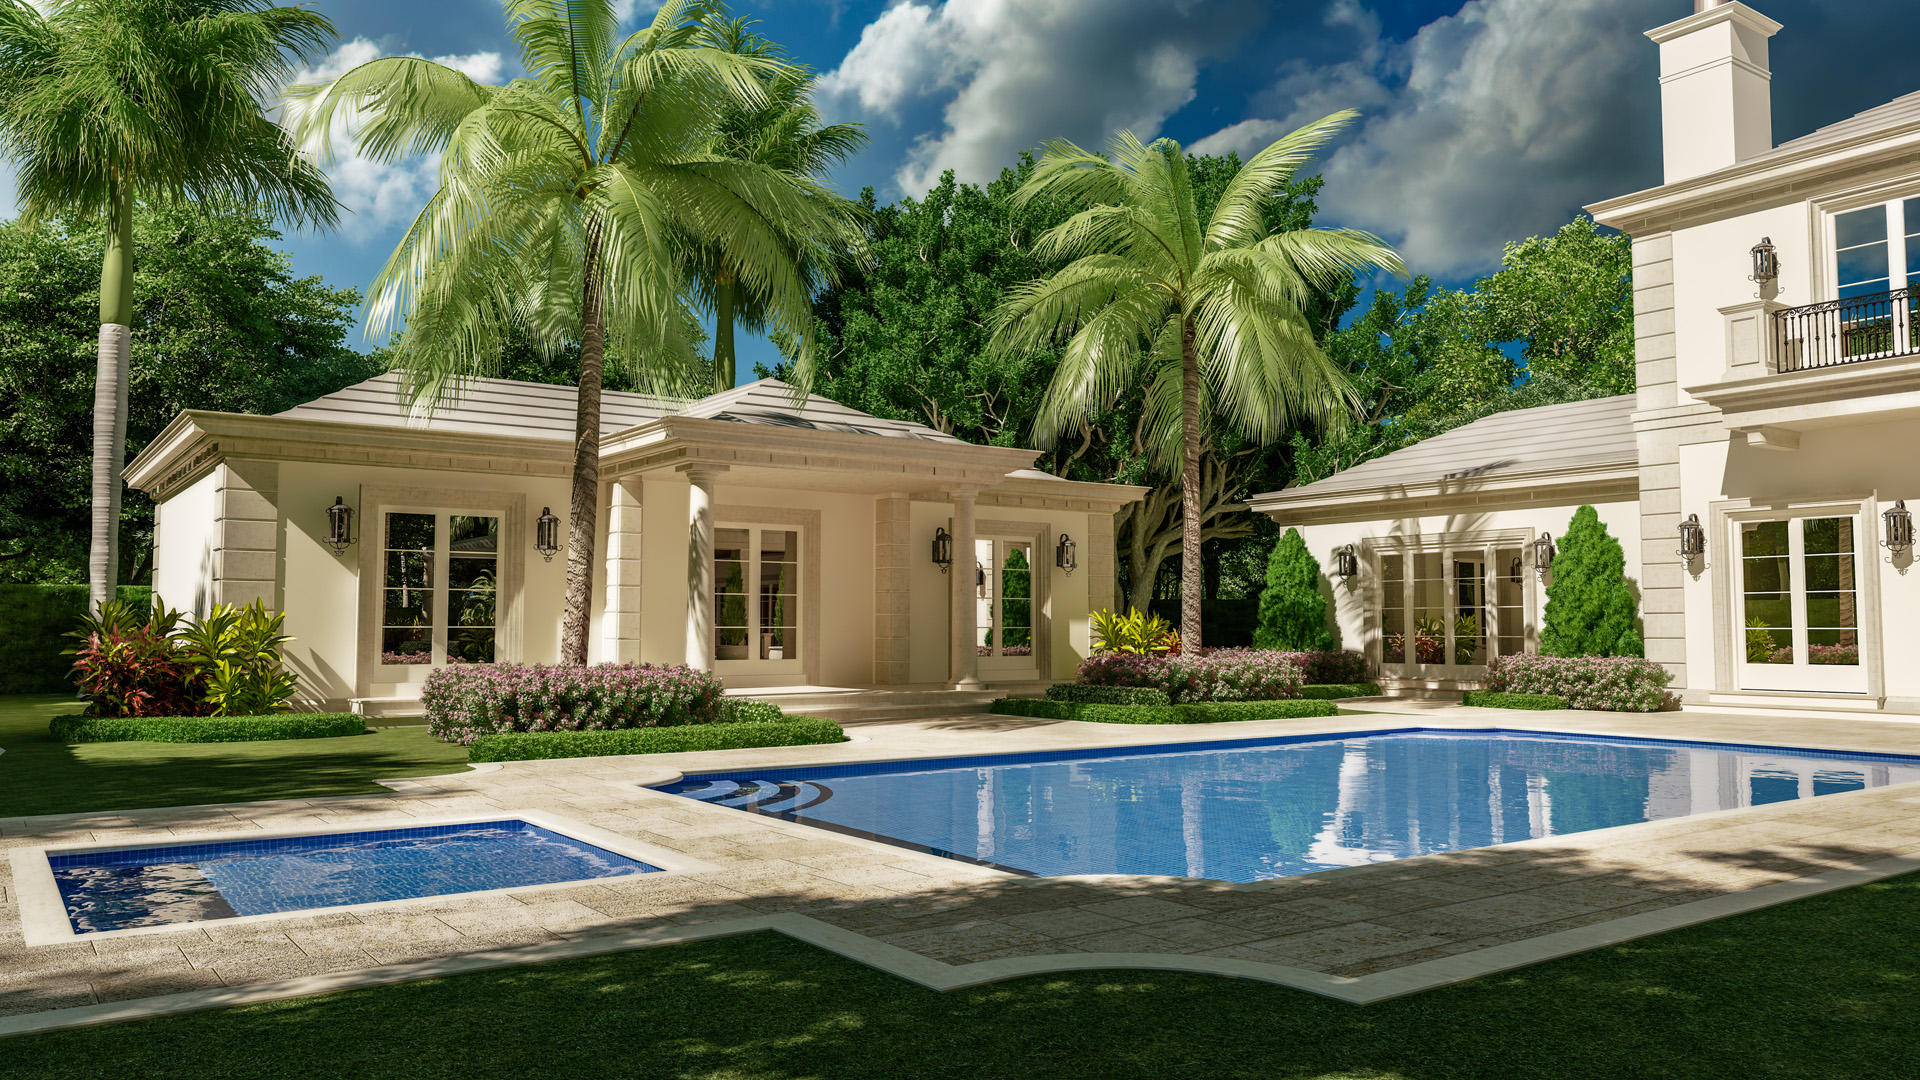 Palm Beach, Florida 33480, 7 Bedrooms Bedrooms, ,8 BathroomsBathrooms,Residential,For Sale,Via Tortuga Aka 474 N County,RX-10397773